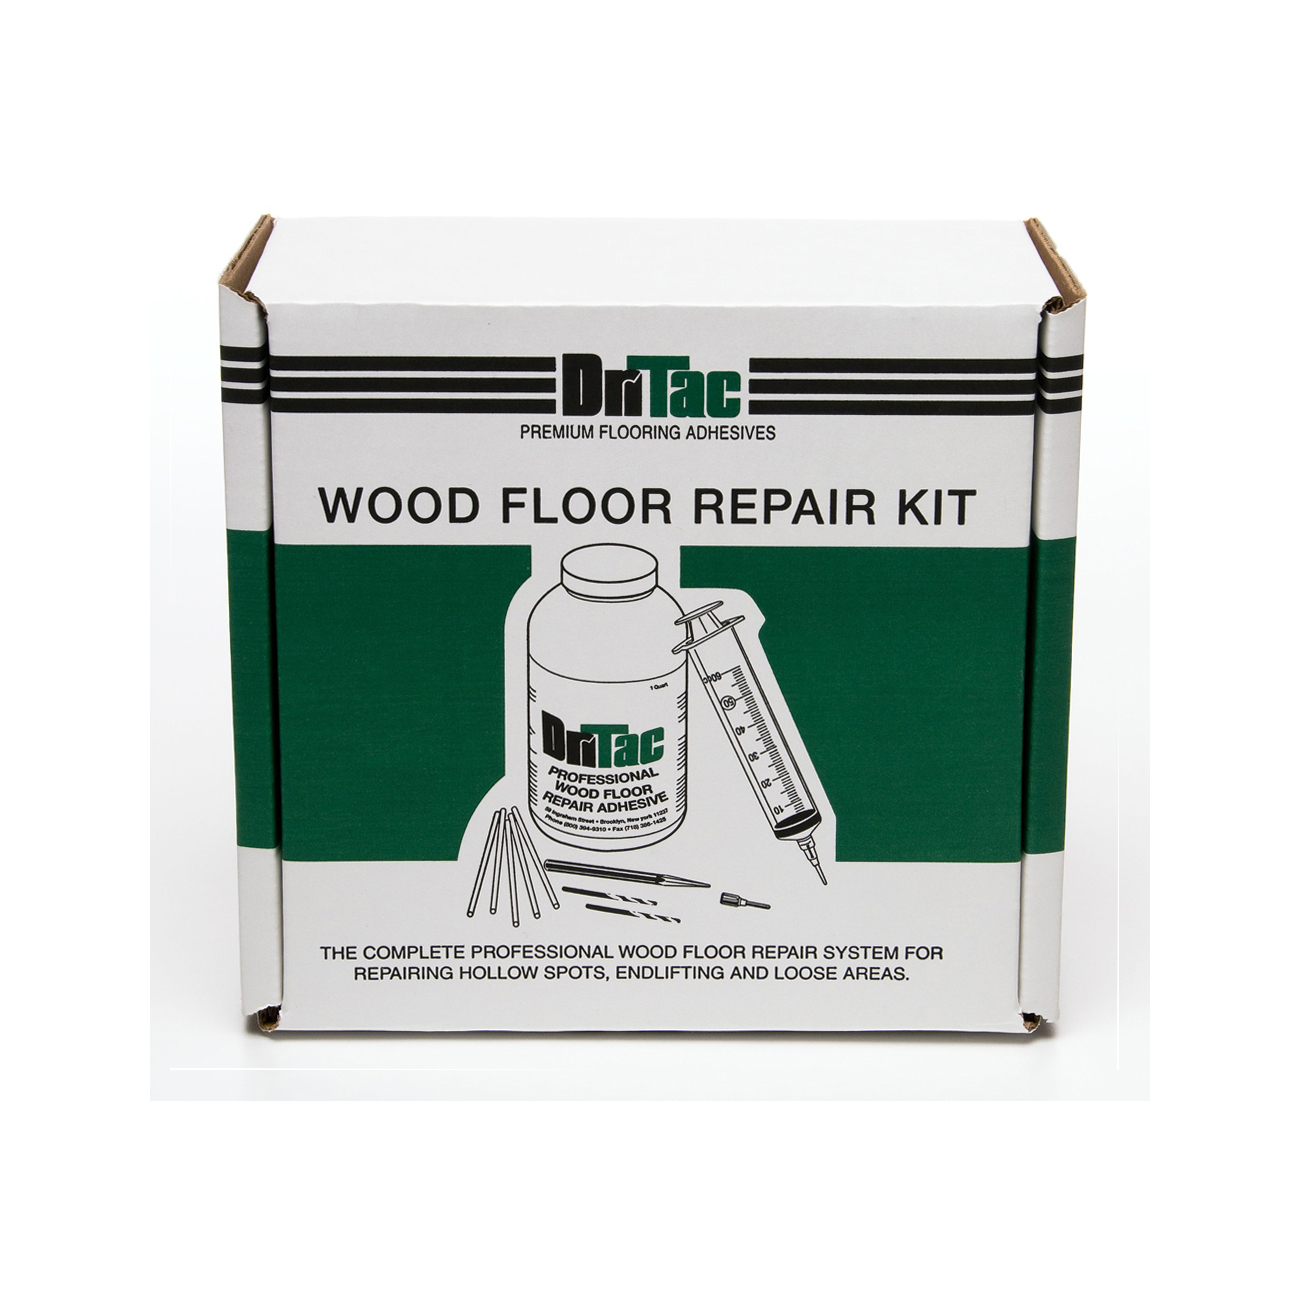 Dritac premium flooring adhesives wood floor repair kit for Hardwood floor repair